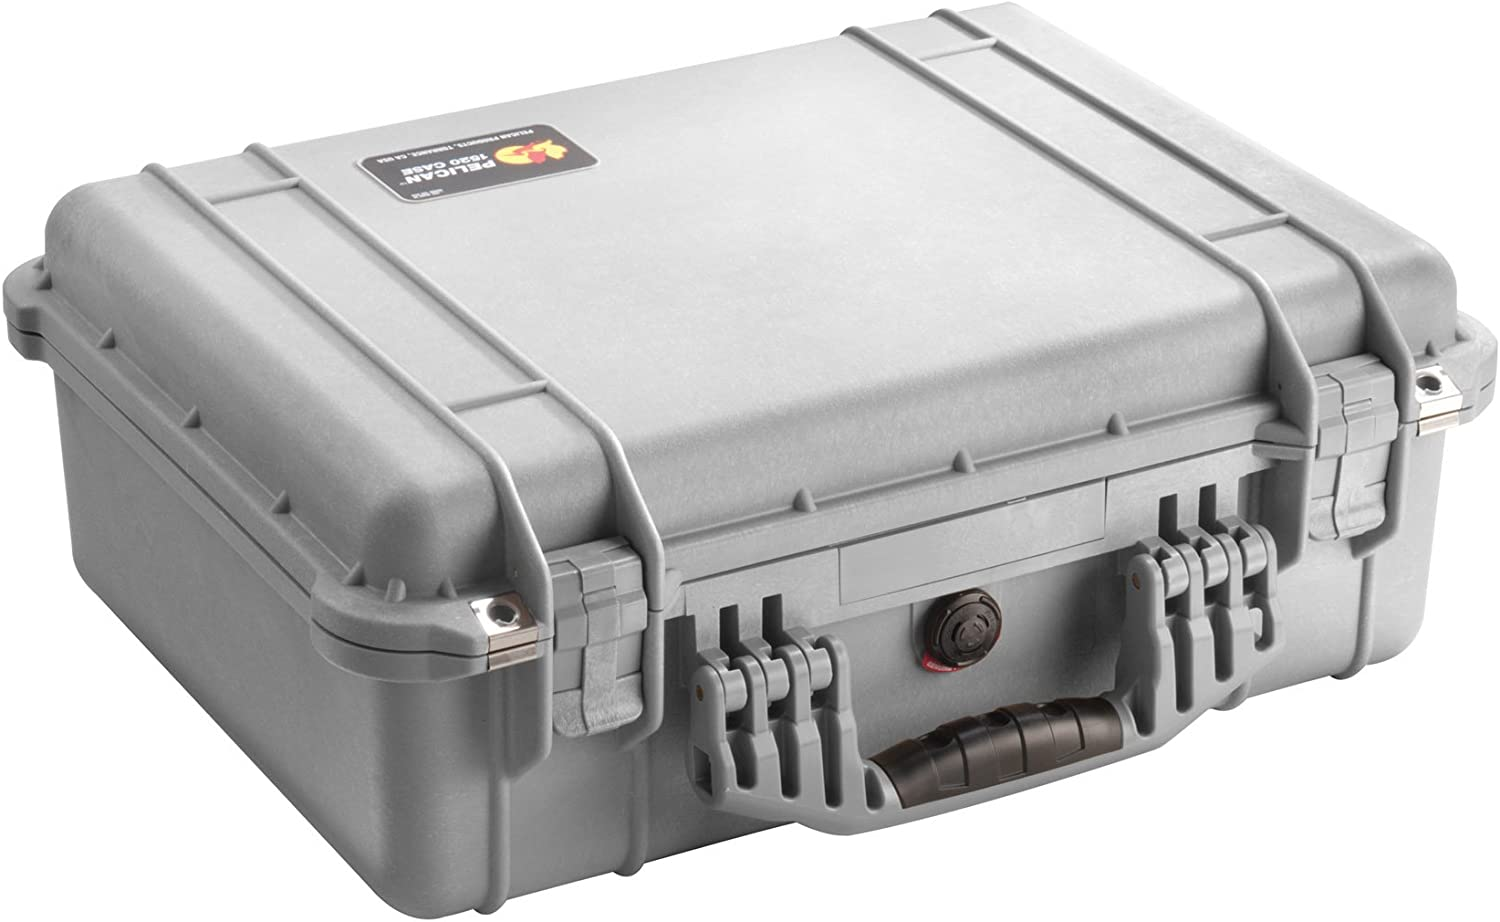 Pelican 1520 Case With Padded Divider